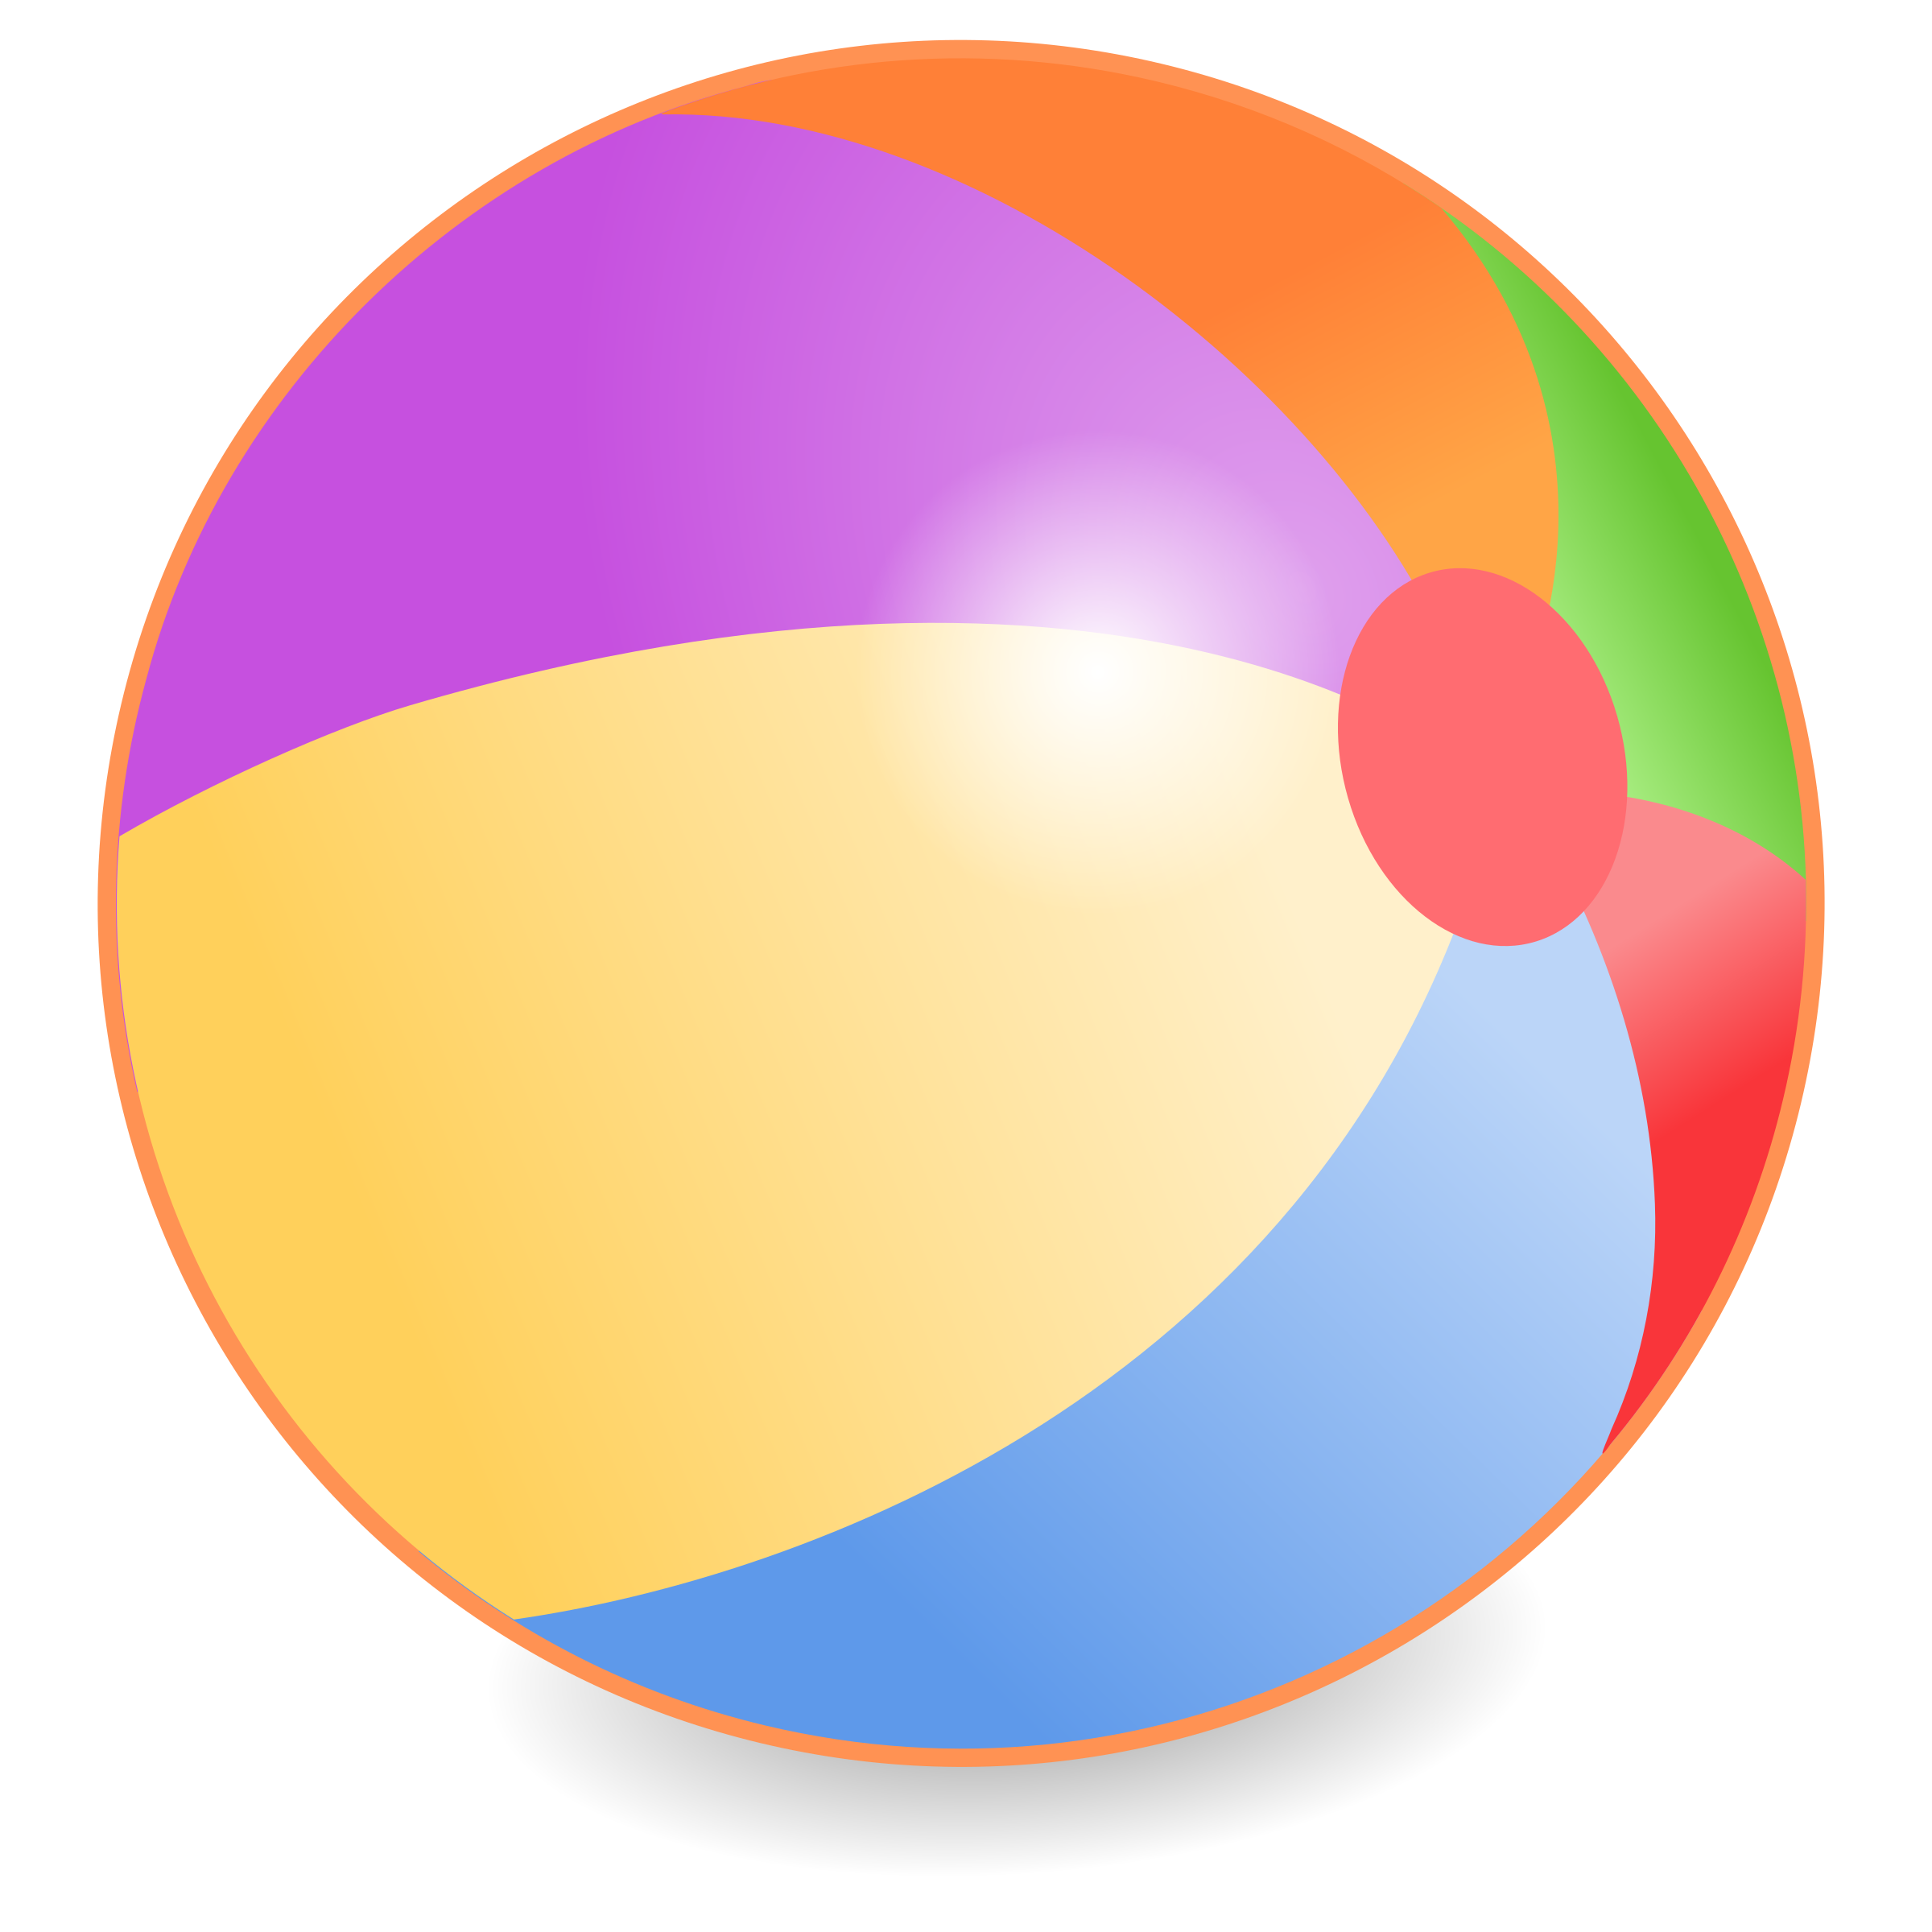 Beach ball clipart 20 free Cliparts | Download images on ...